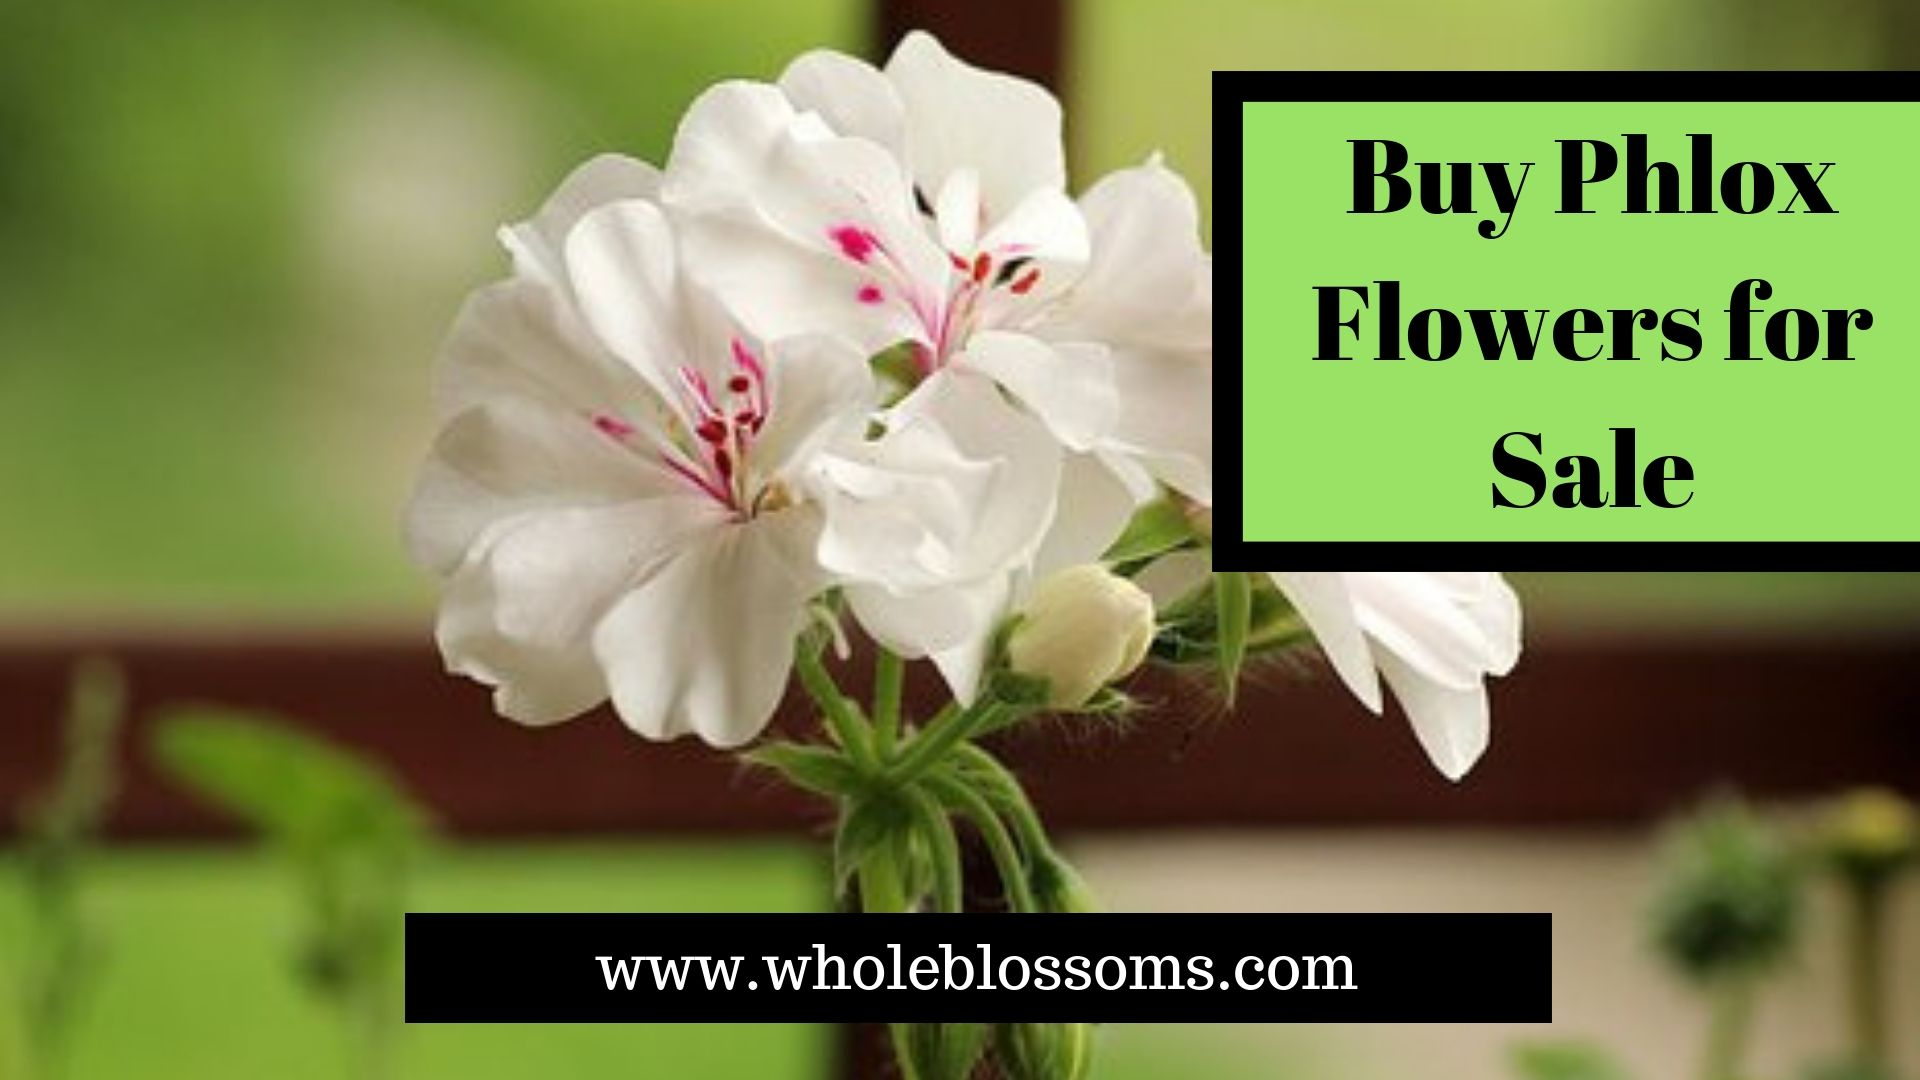 Phlox Is Thick Columns Greatest Filler Flowers They Are Used For Any Flower Arrangement Wedding Bridal Bouquet Or Table Centerpieces